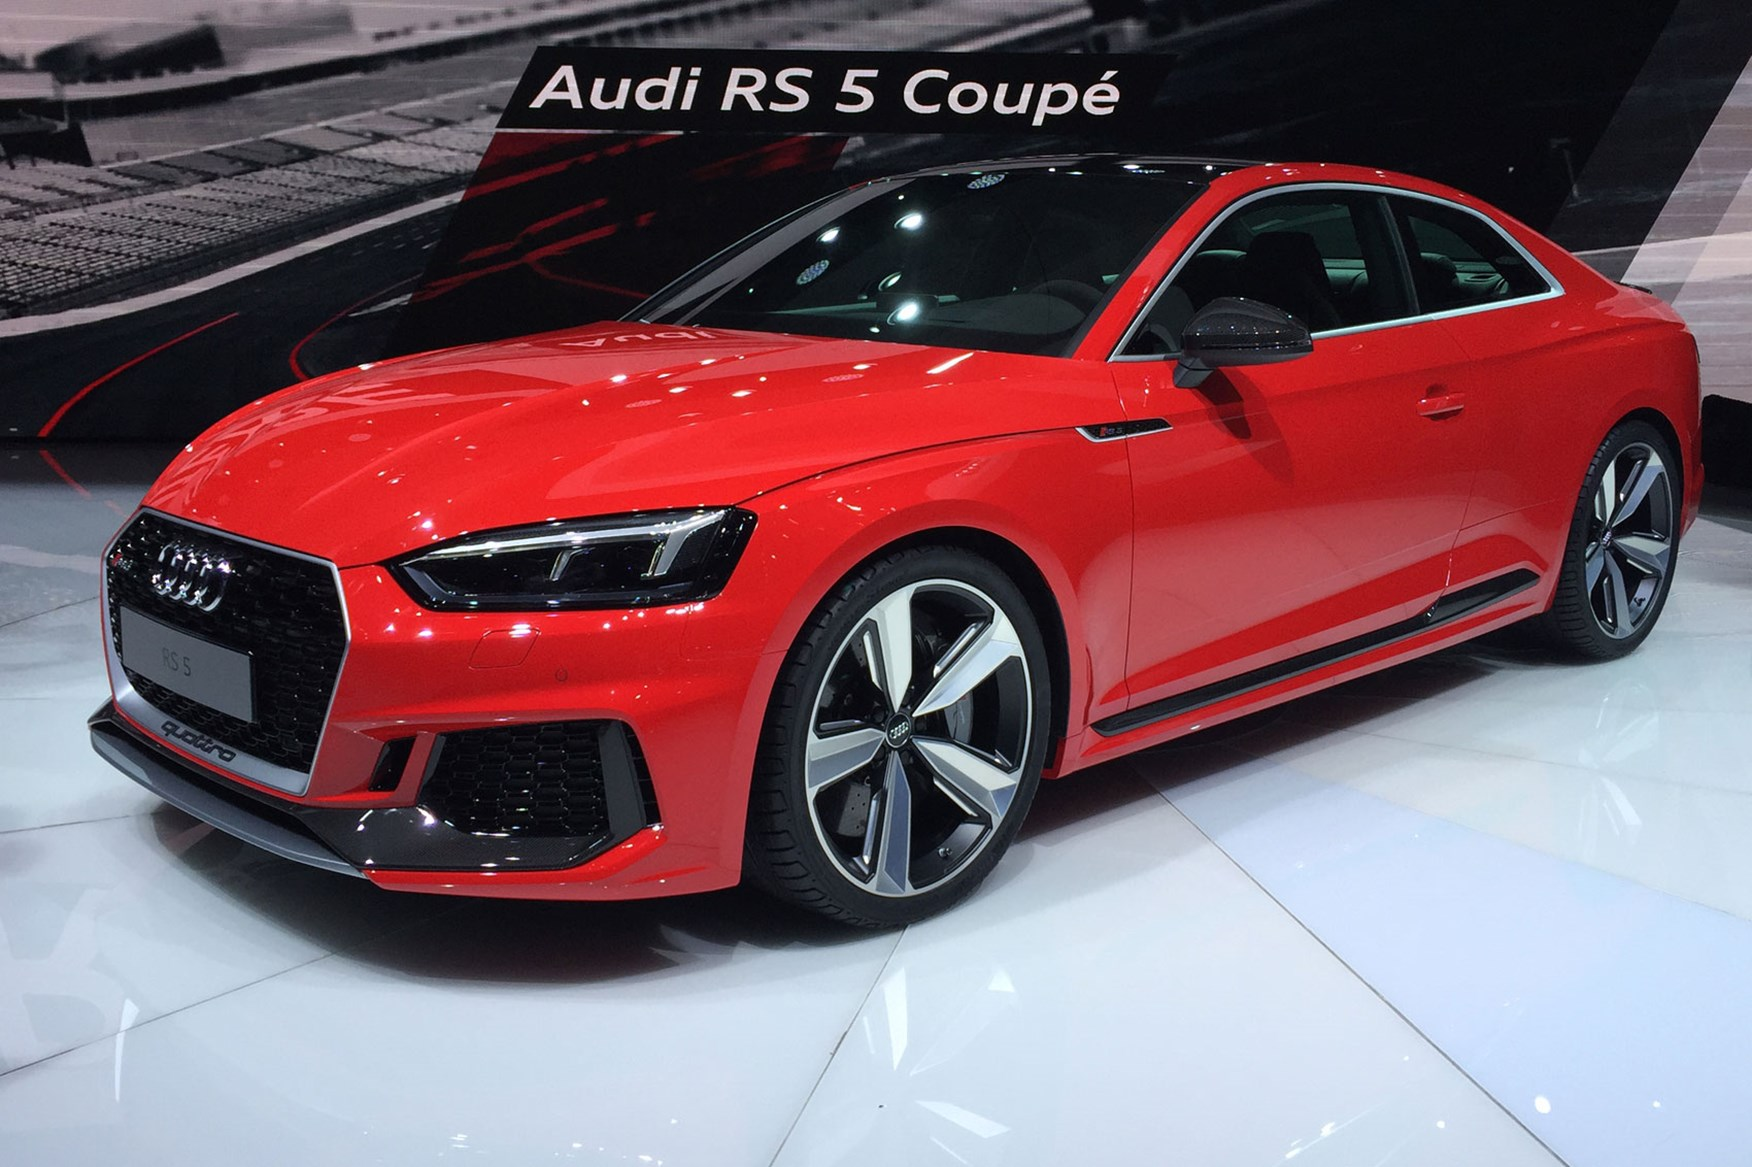 2013 audi rs5 for sale south africa 16